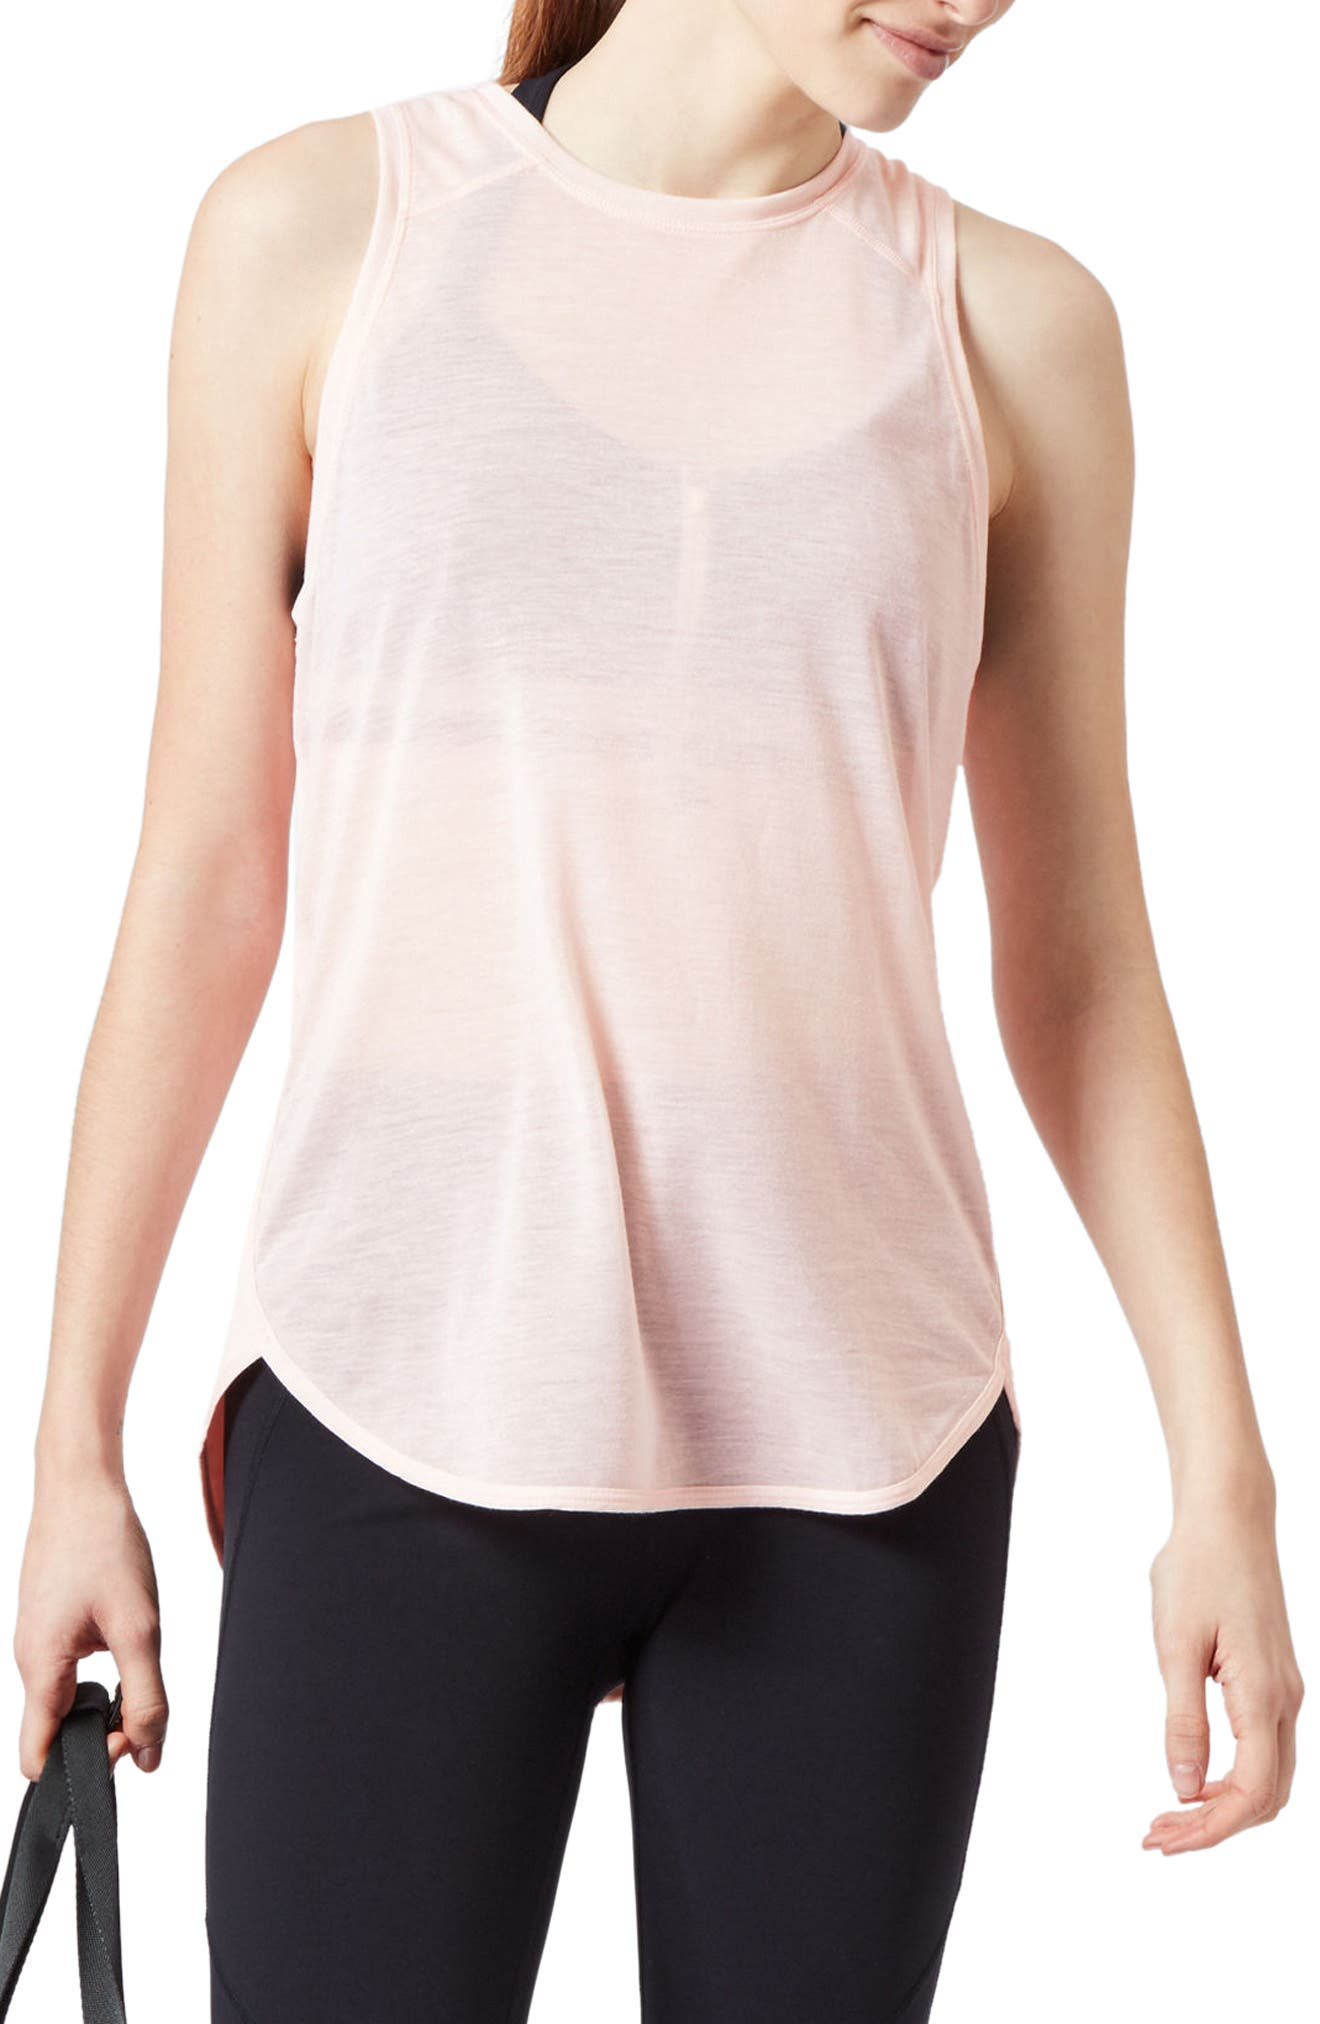 Pacesetter Run Tank,                         Main,                         color, Liberated Pink